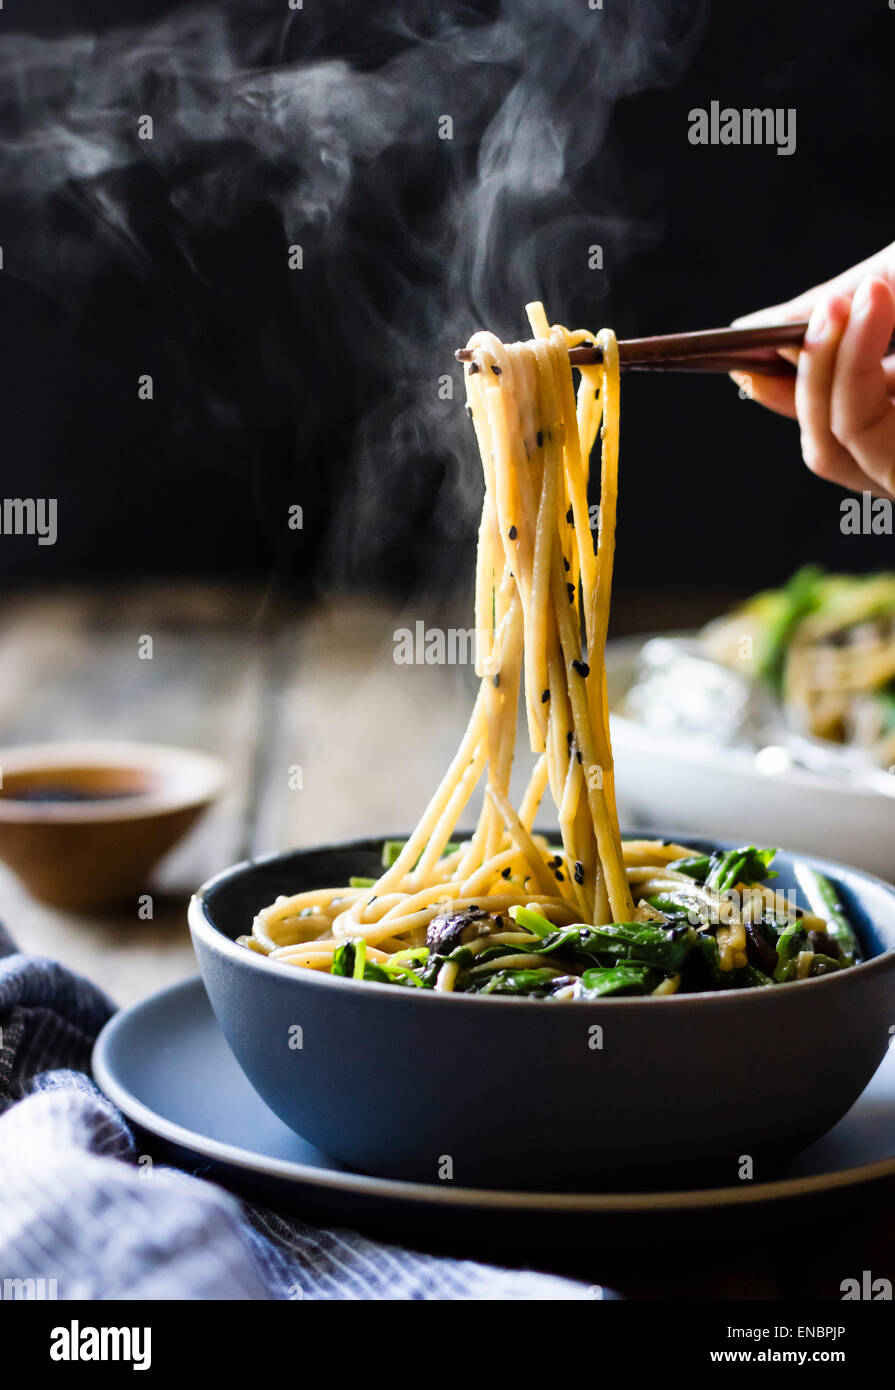 Sesame noodles with tofu and vegetables - Stock Image